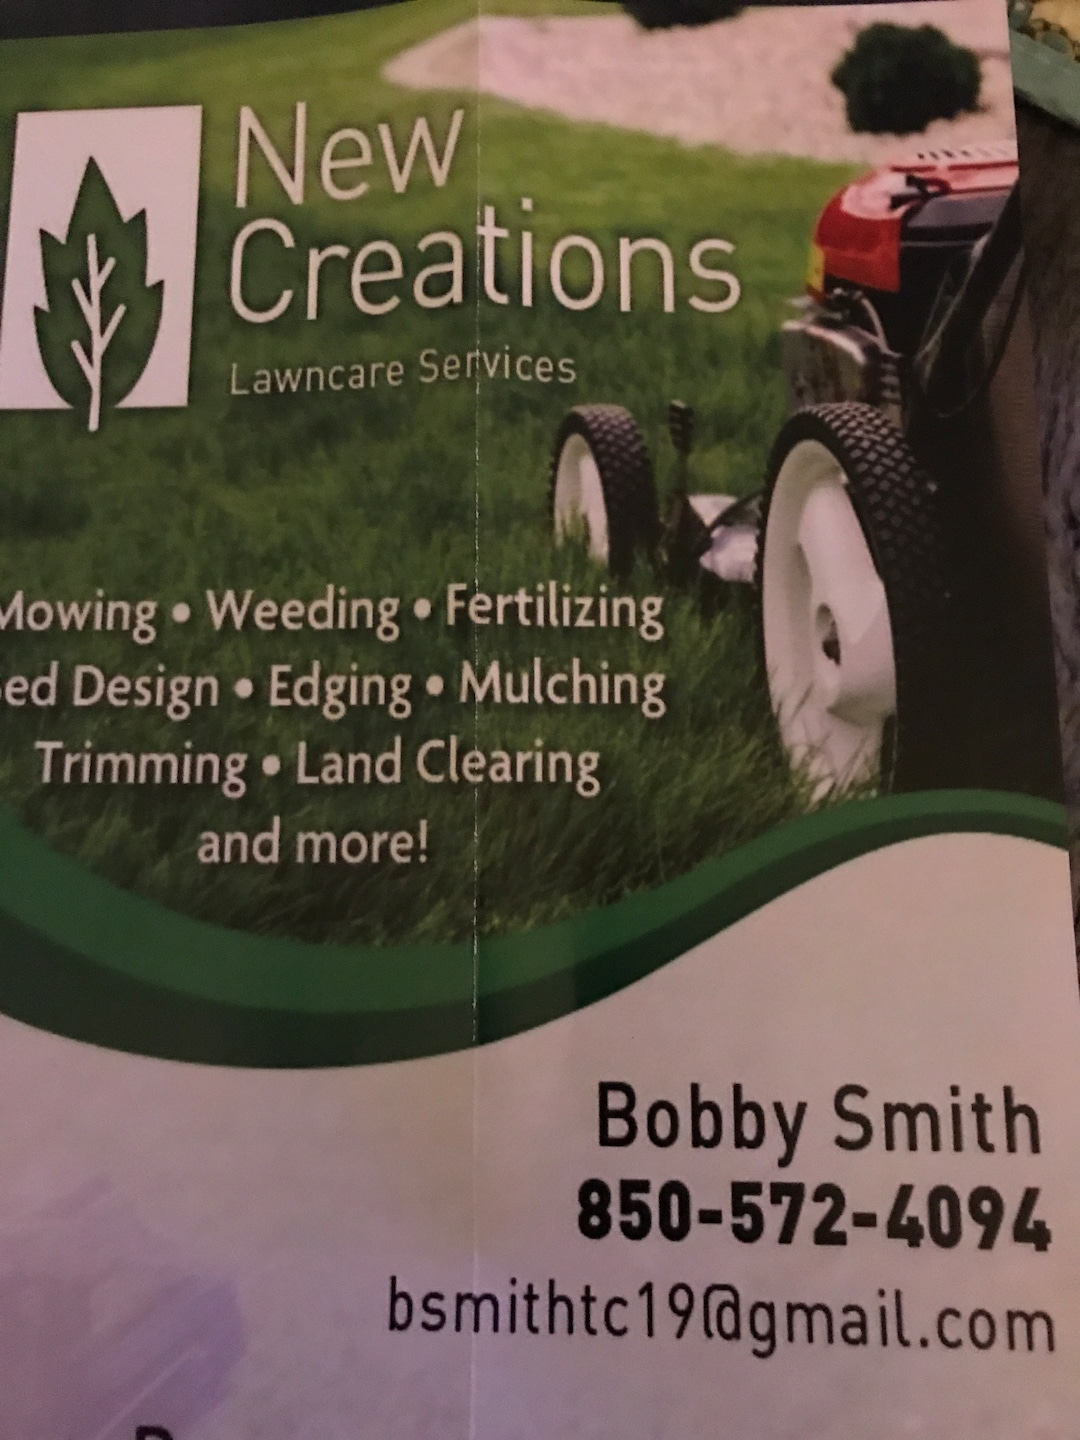 New Creations Lawn Care Services